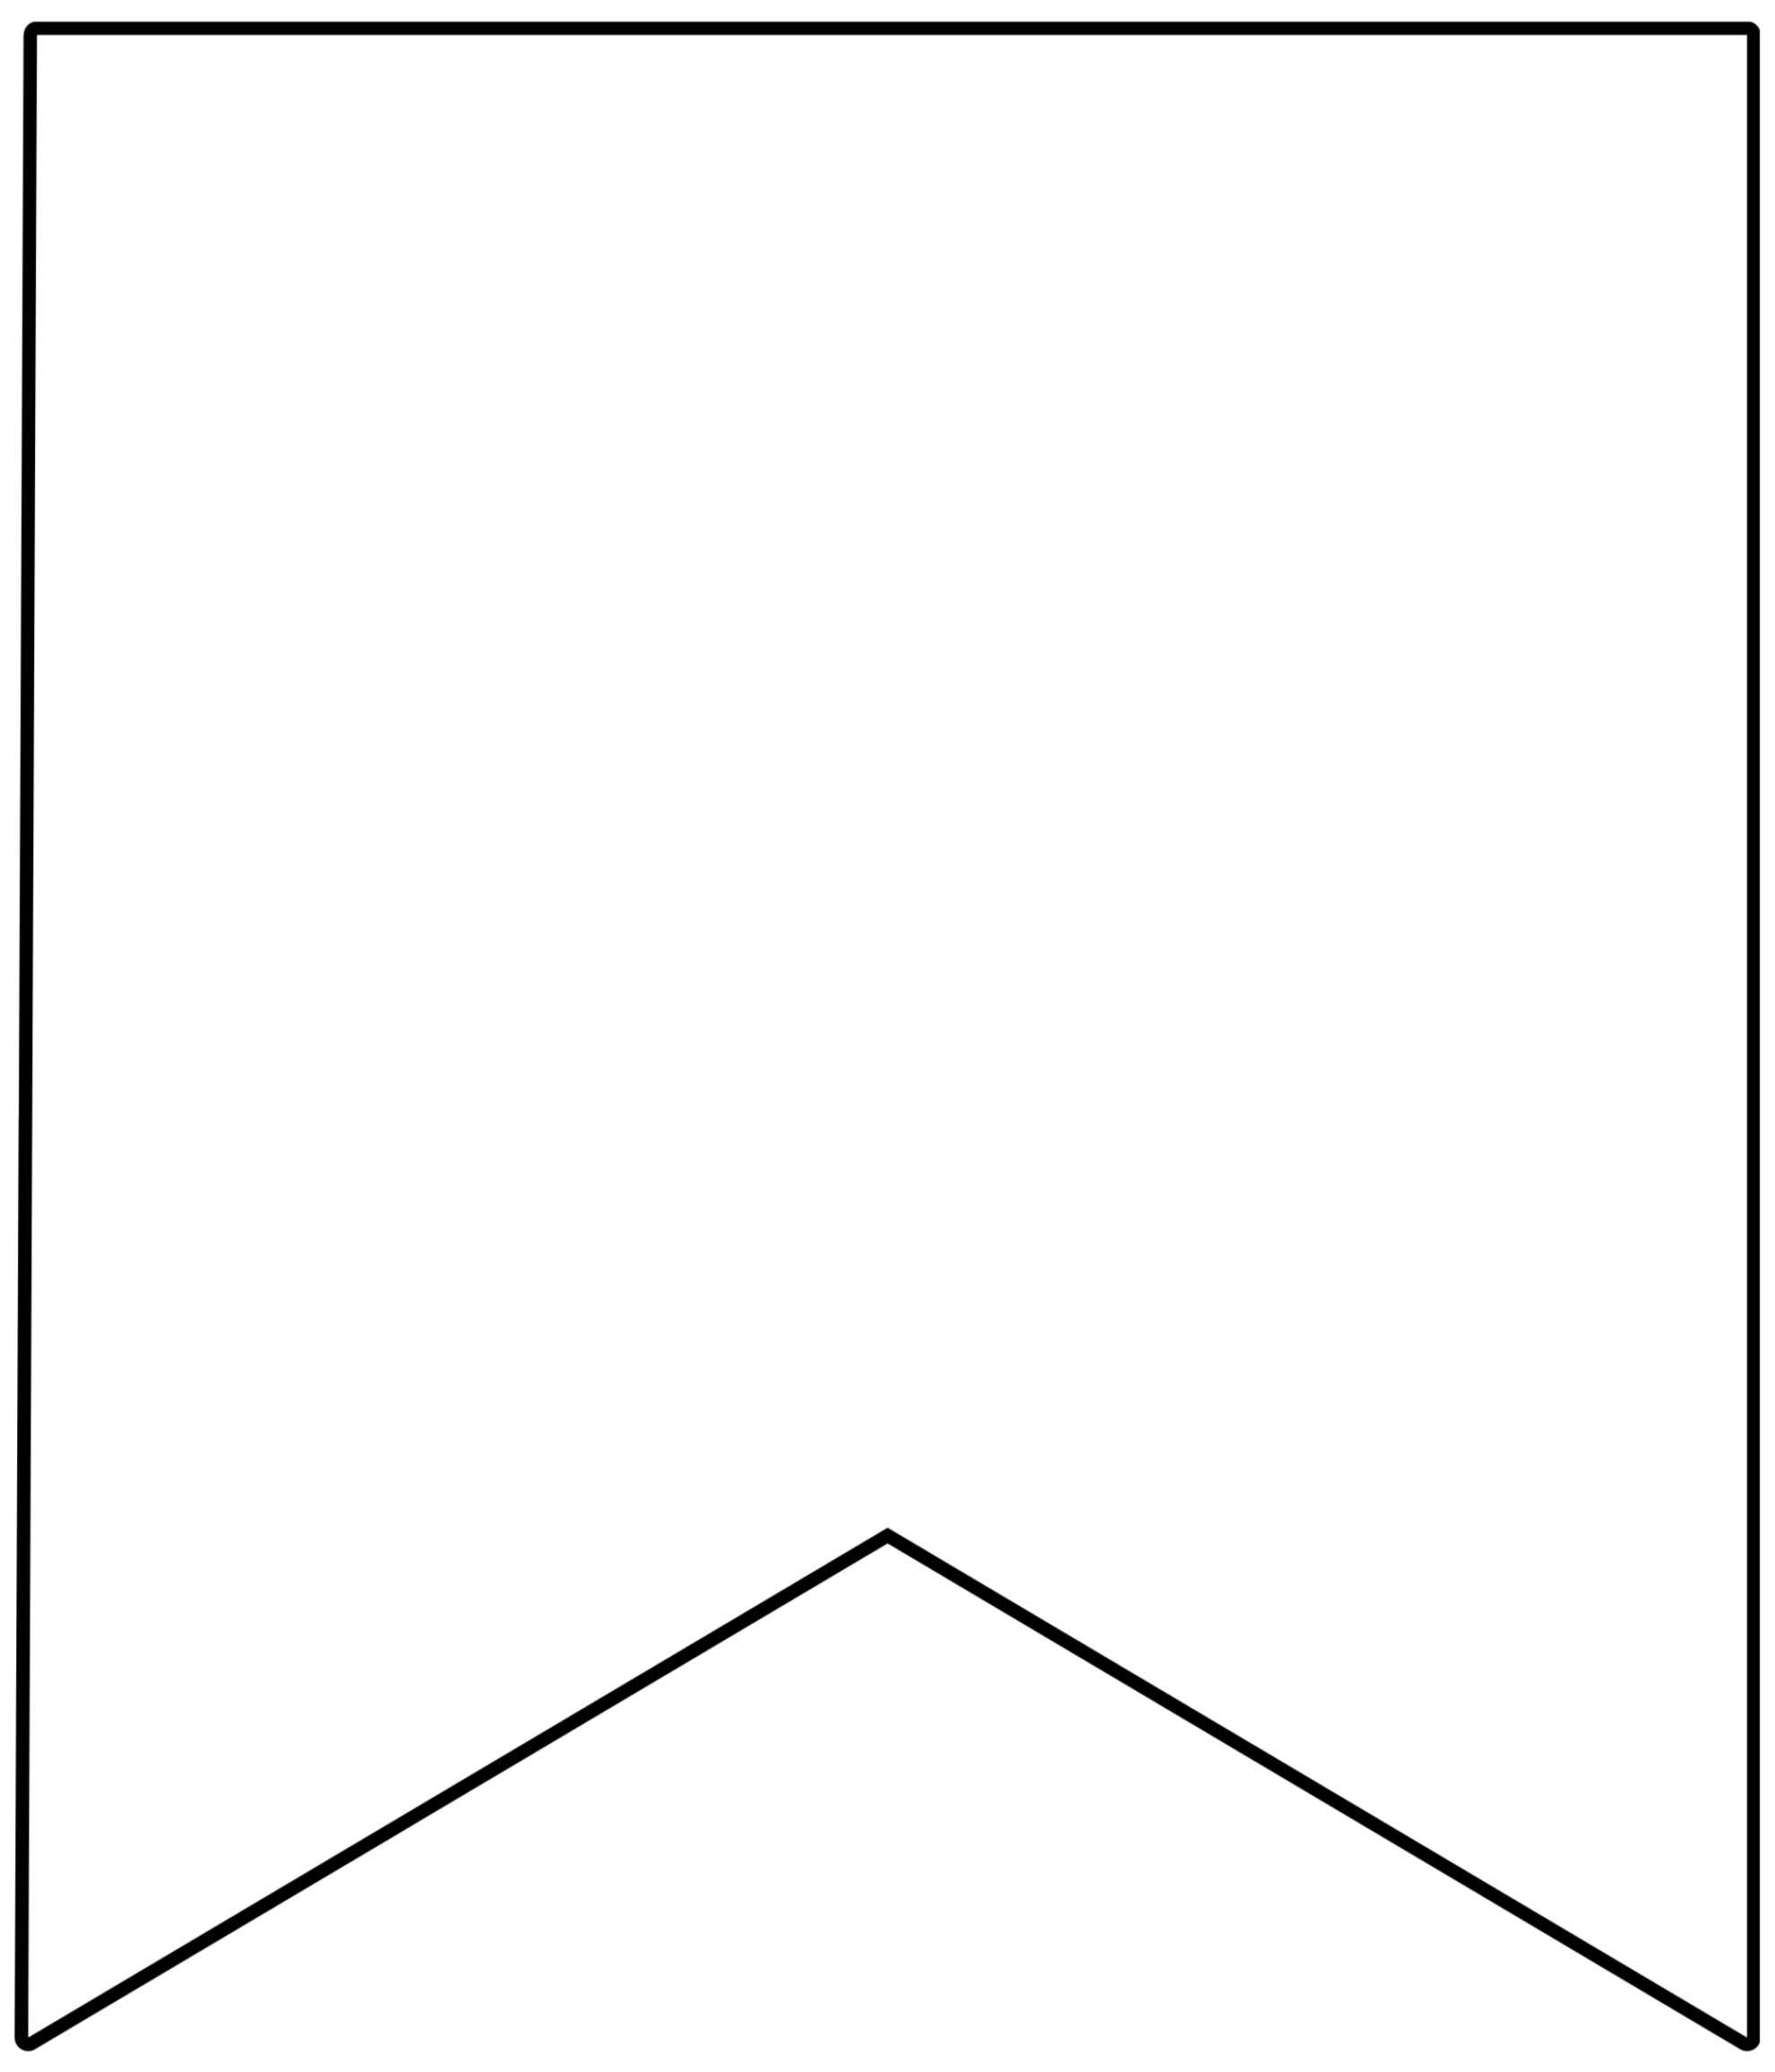 Free Printable Banner Templates {Blank Banners} - Paper For Free Triangle Banner Template